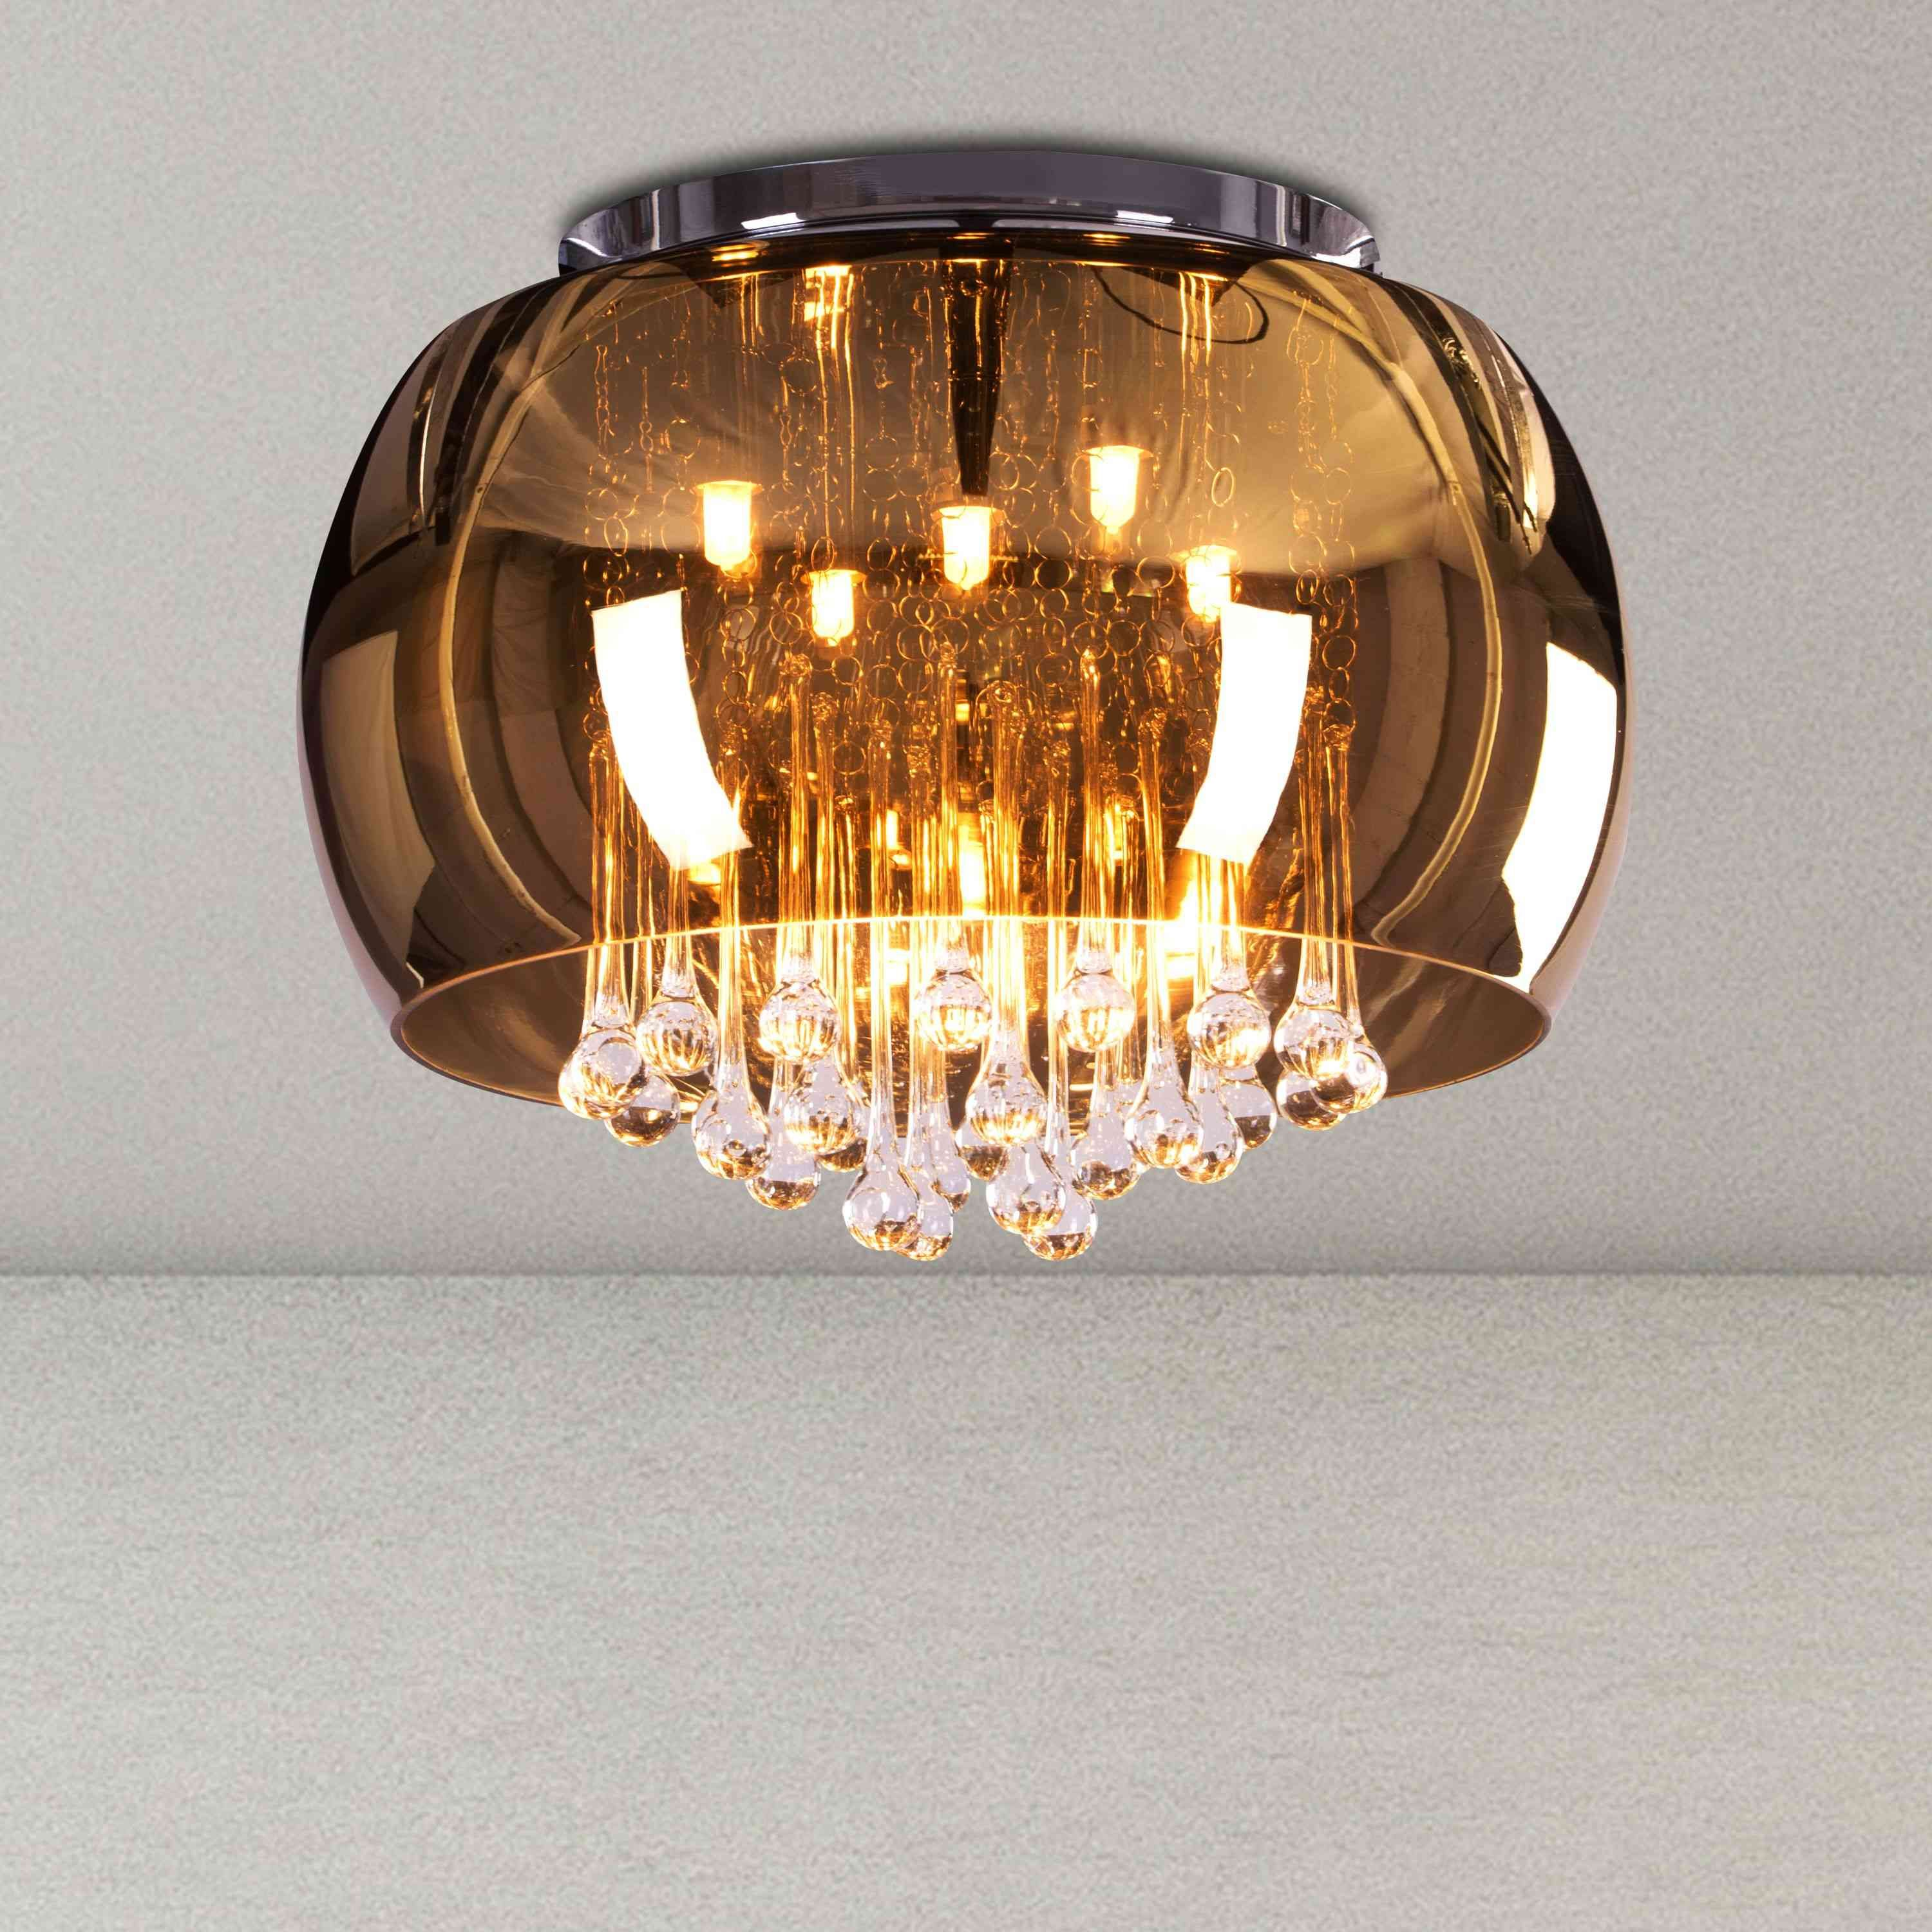 Enchanted Gold Ceiling Chandelier Buy Chandeliers Online In India In 2020 Gold Ceiling Ceiling Chandelier Buy Chandelier